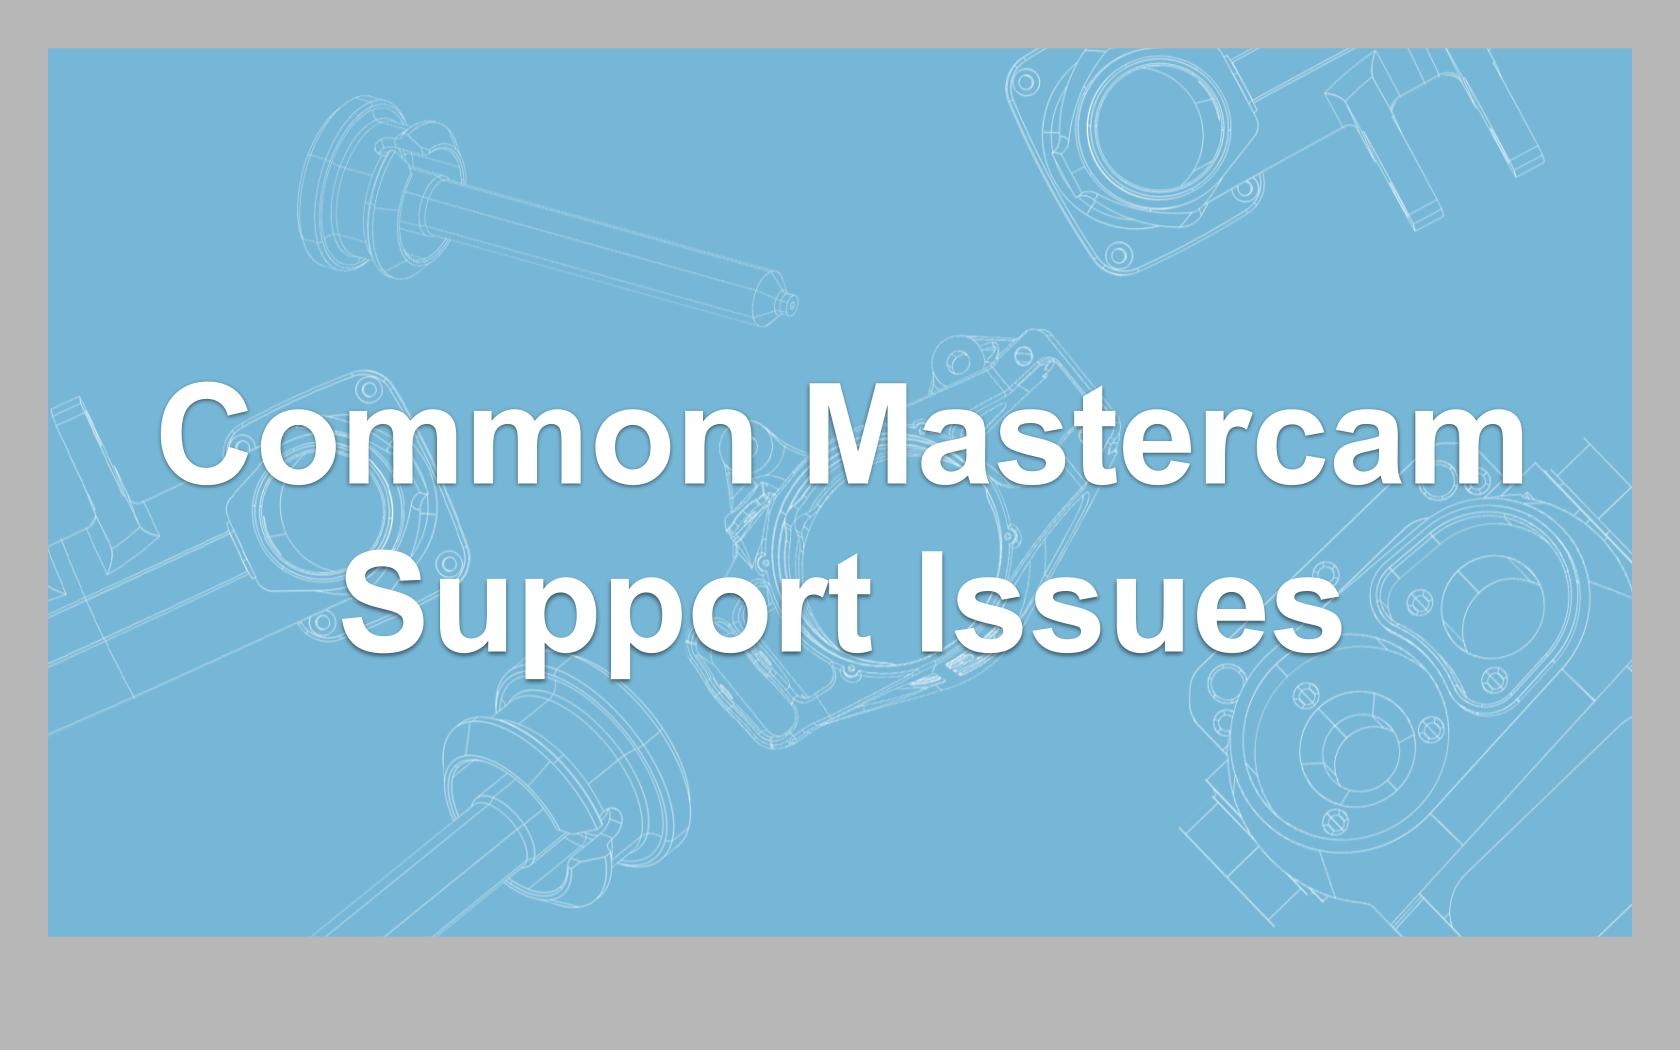 Common Mastercam Support Issues